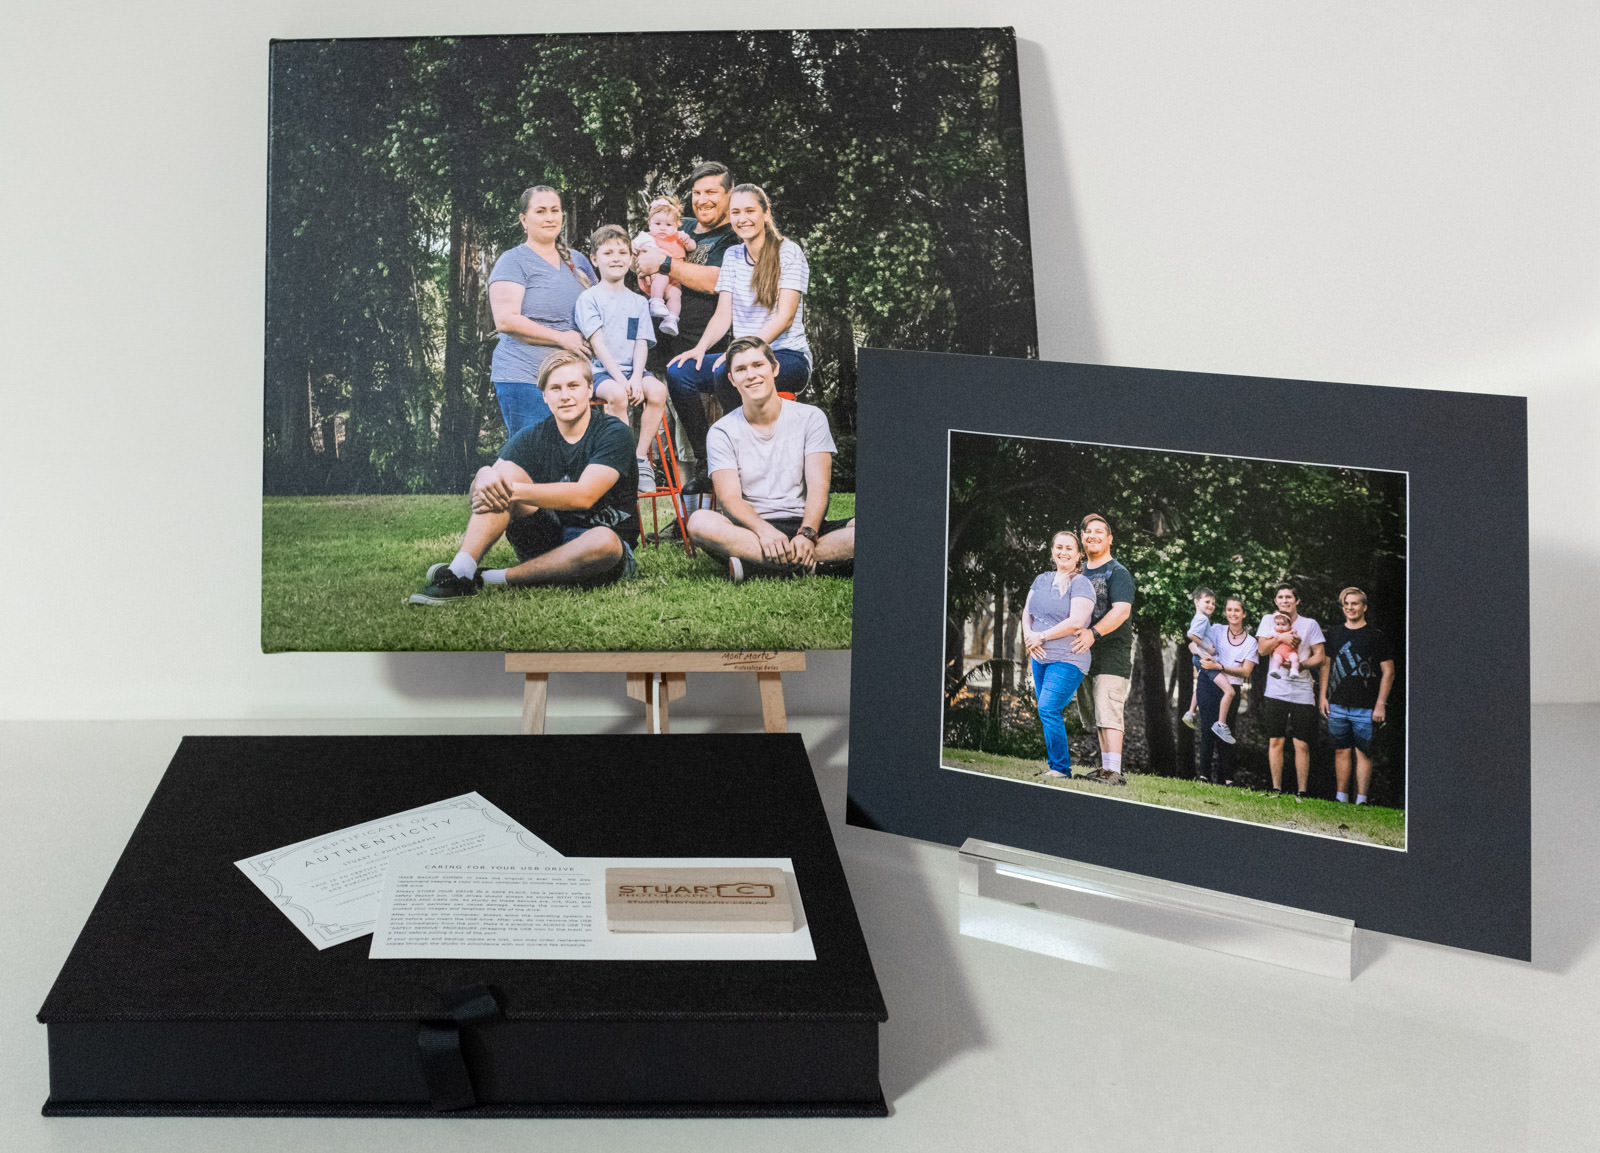 Canvas Print with box of Matted Prints